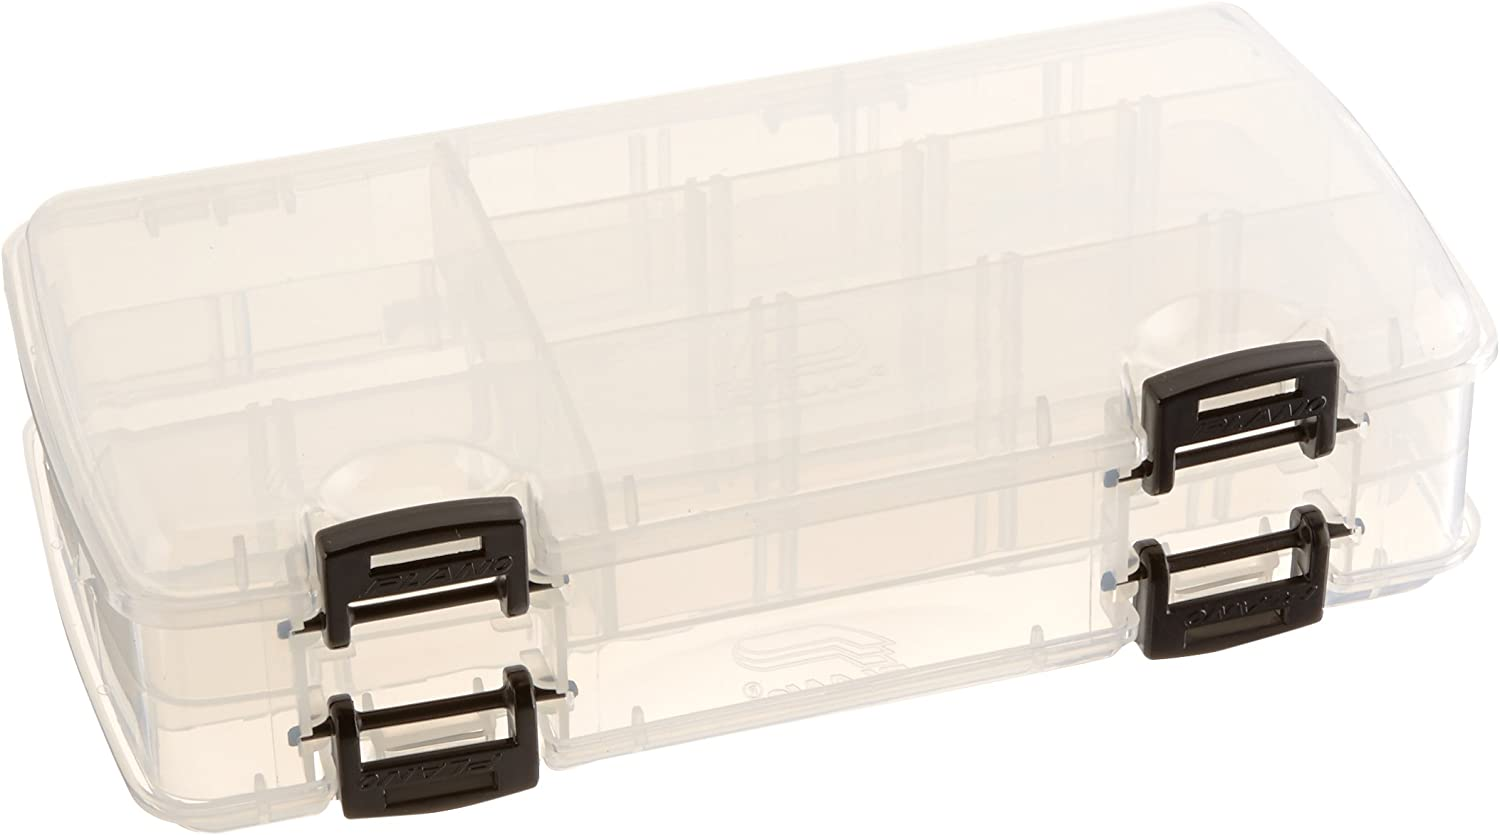 Plano 350022 3500-22 Double-Sided Premium Sto Box 67% Popularity OFF of fixed price Tackle